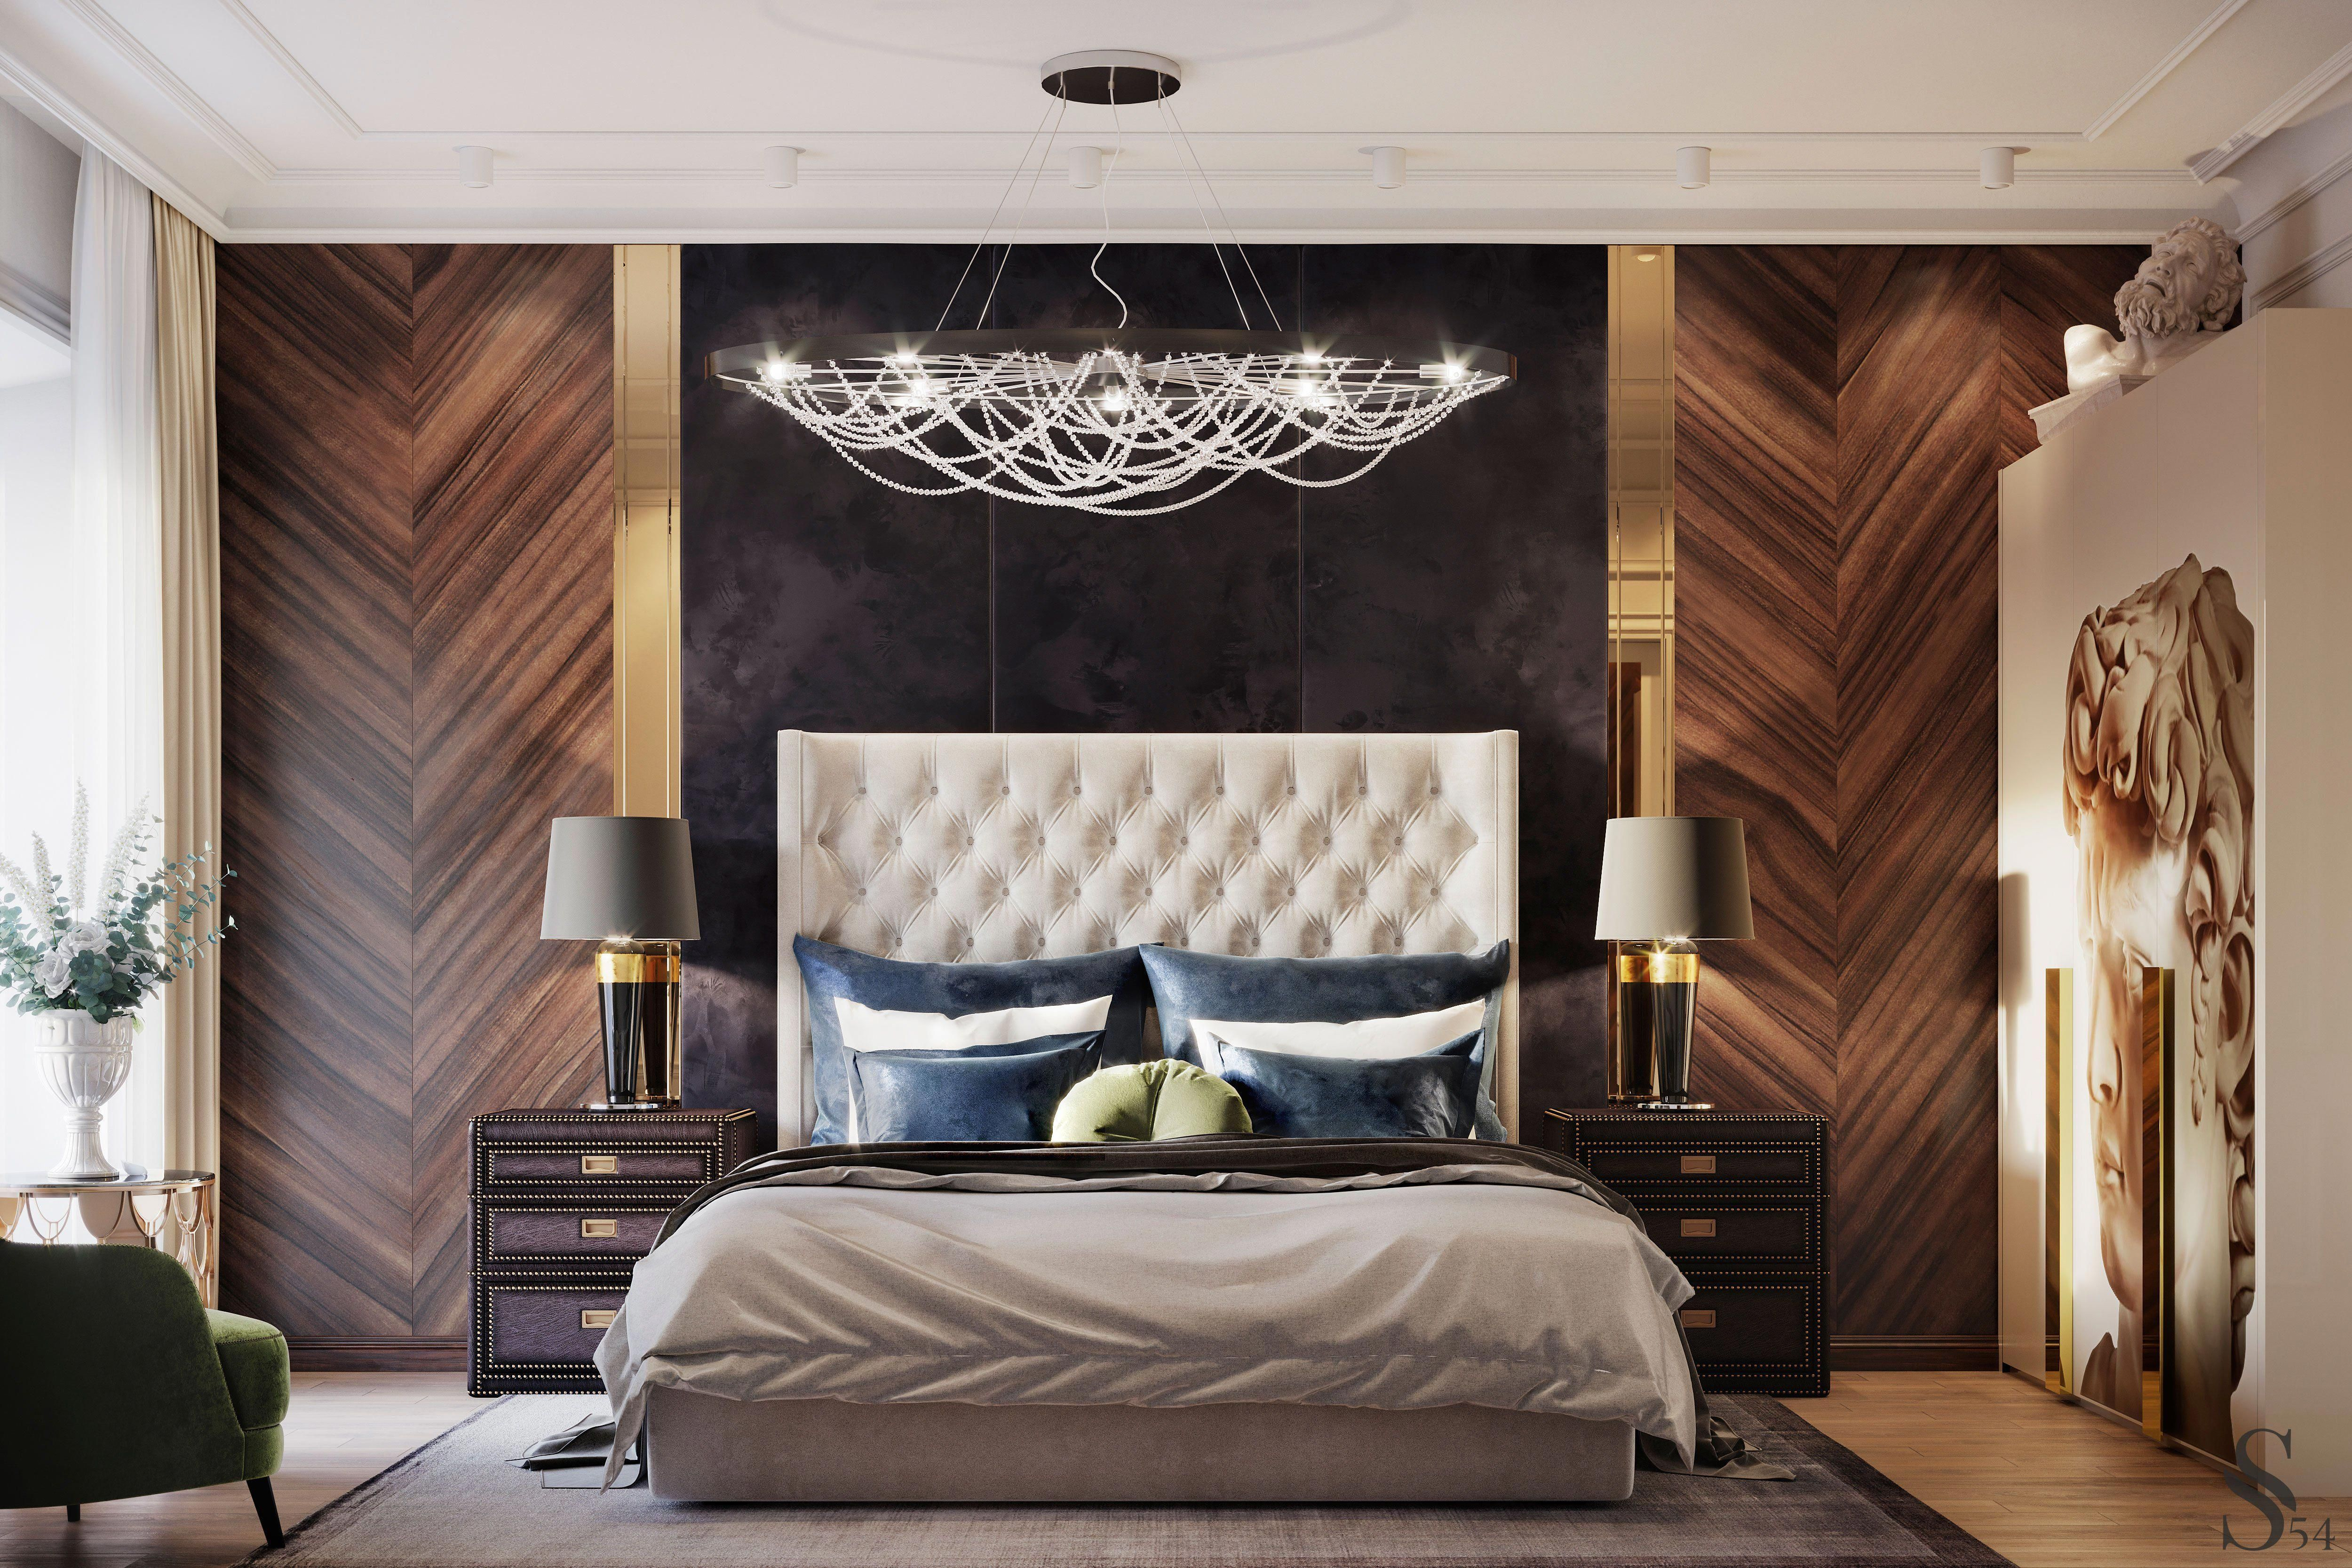 Excellent Bedroom Decoration Are Available On Our Internet Site Check It Out And You Will Not Luxury Bedroom Master Bedroom Bed Design Modern Bedroom Interior